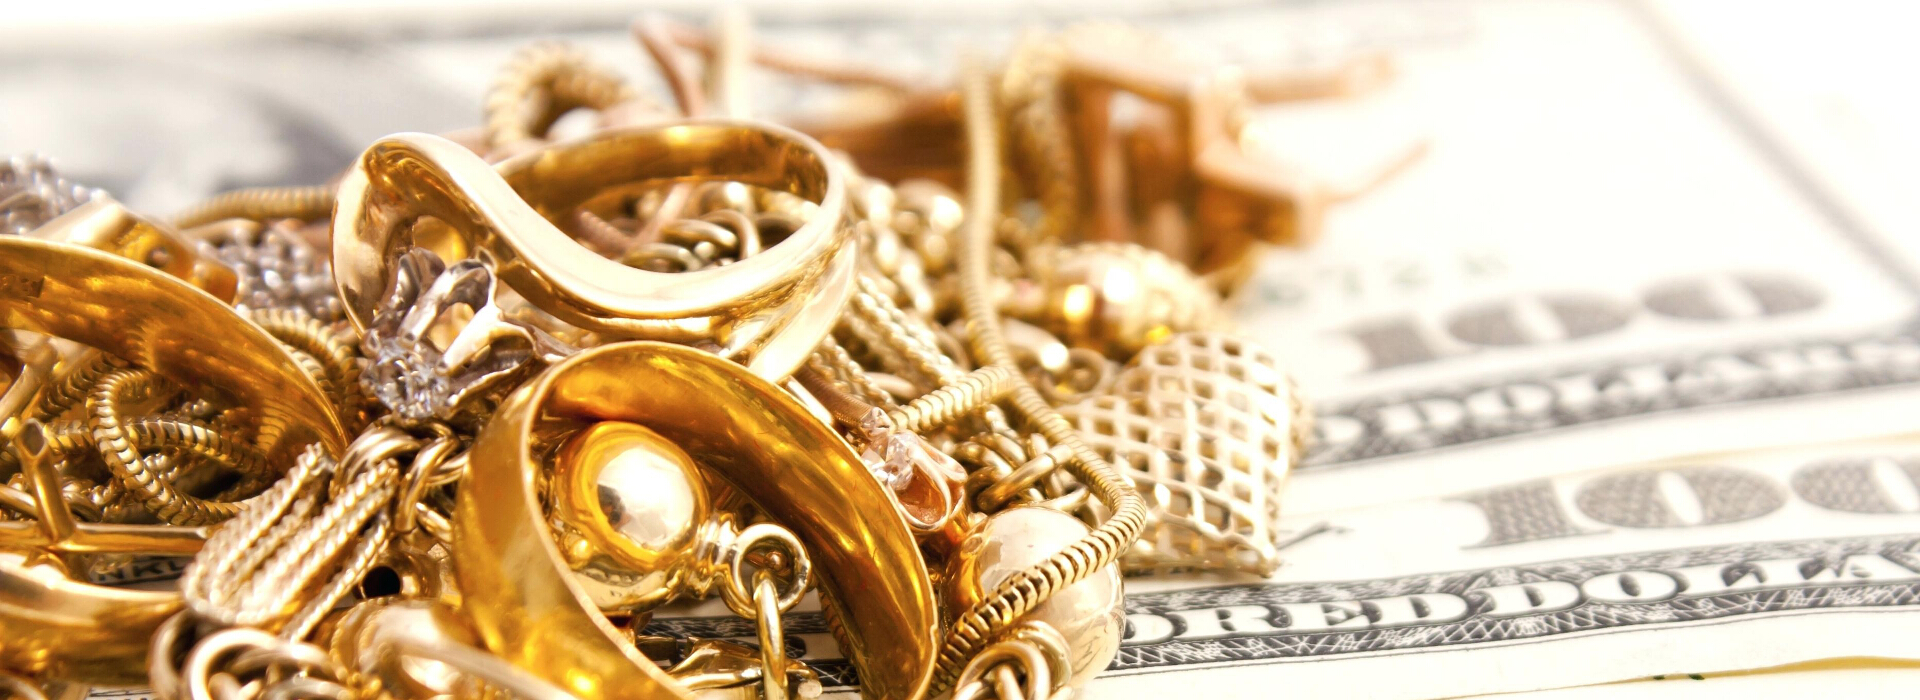 sell jewellery online Sell Gold Jewelry line For Cash My Fresno Ca – belenefo